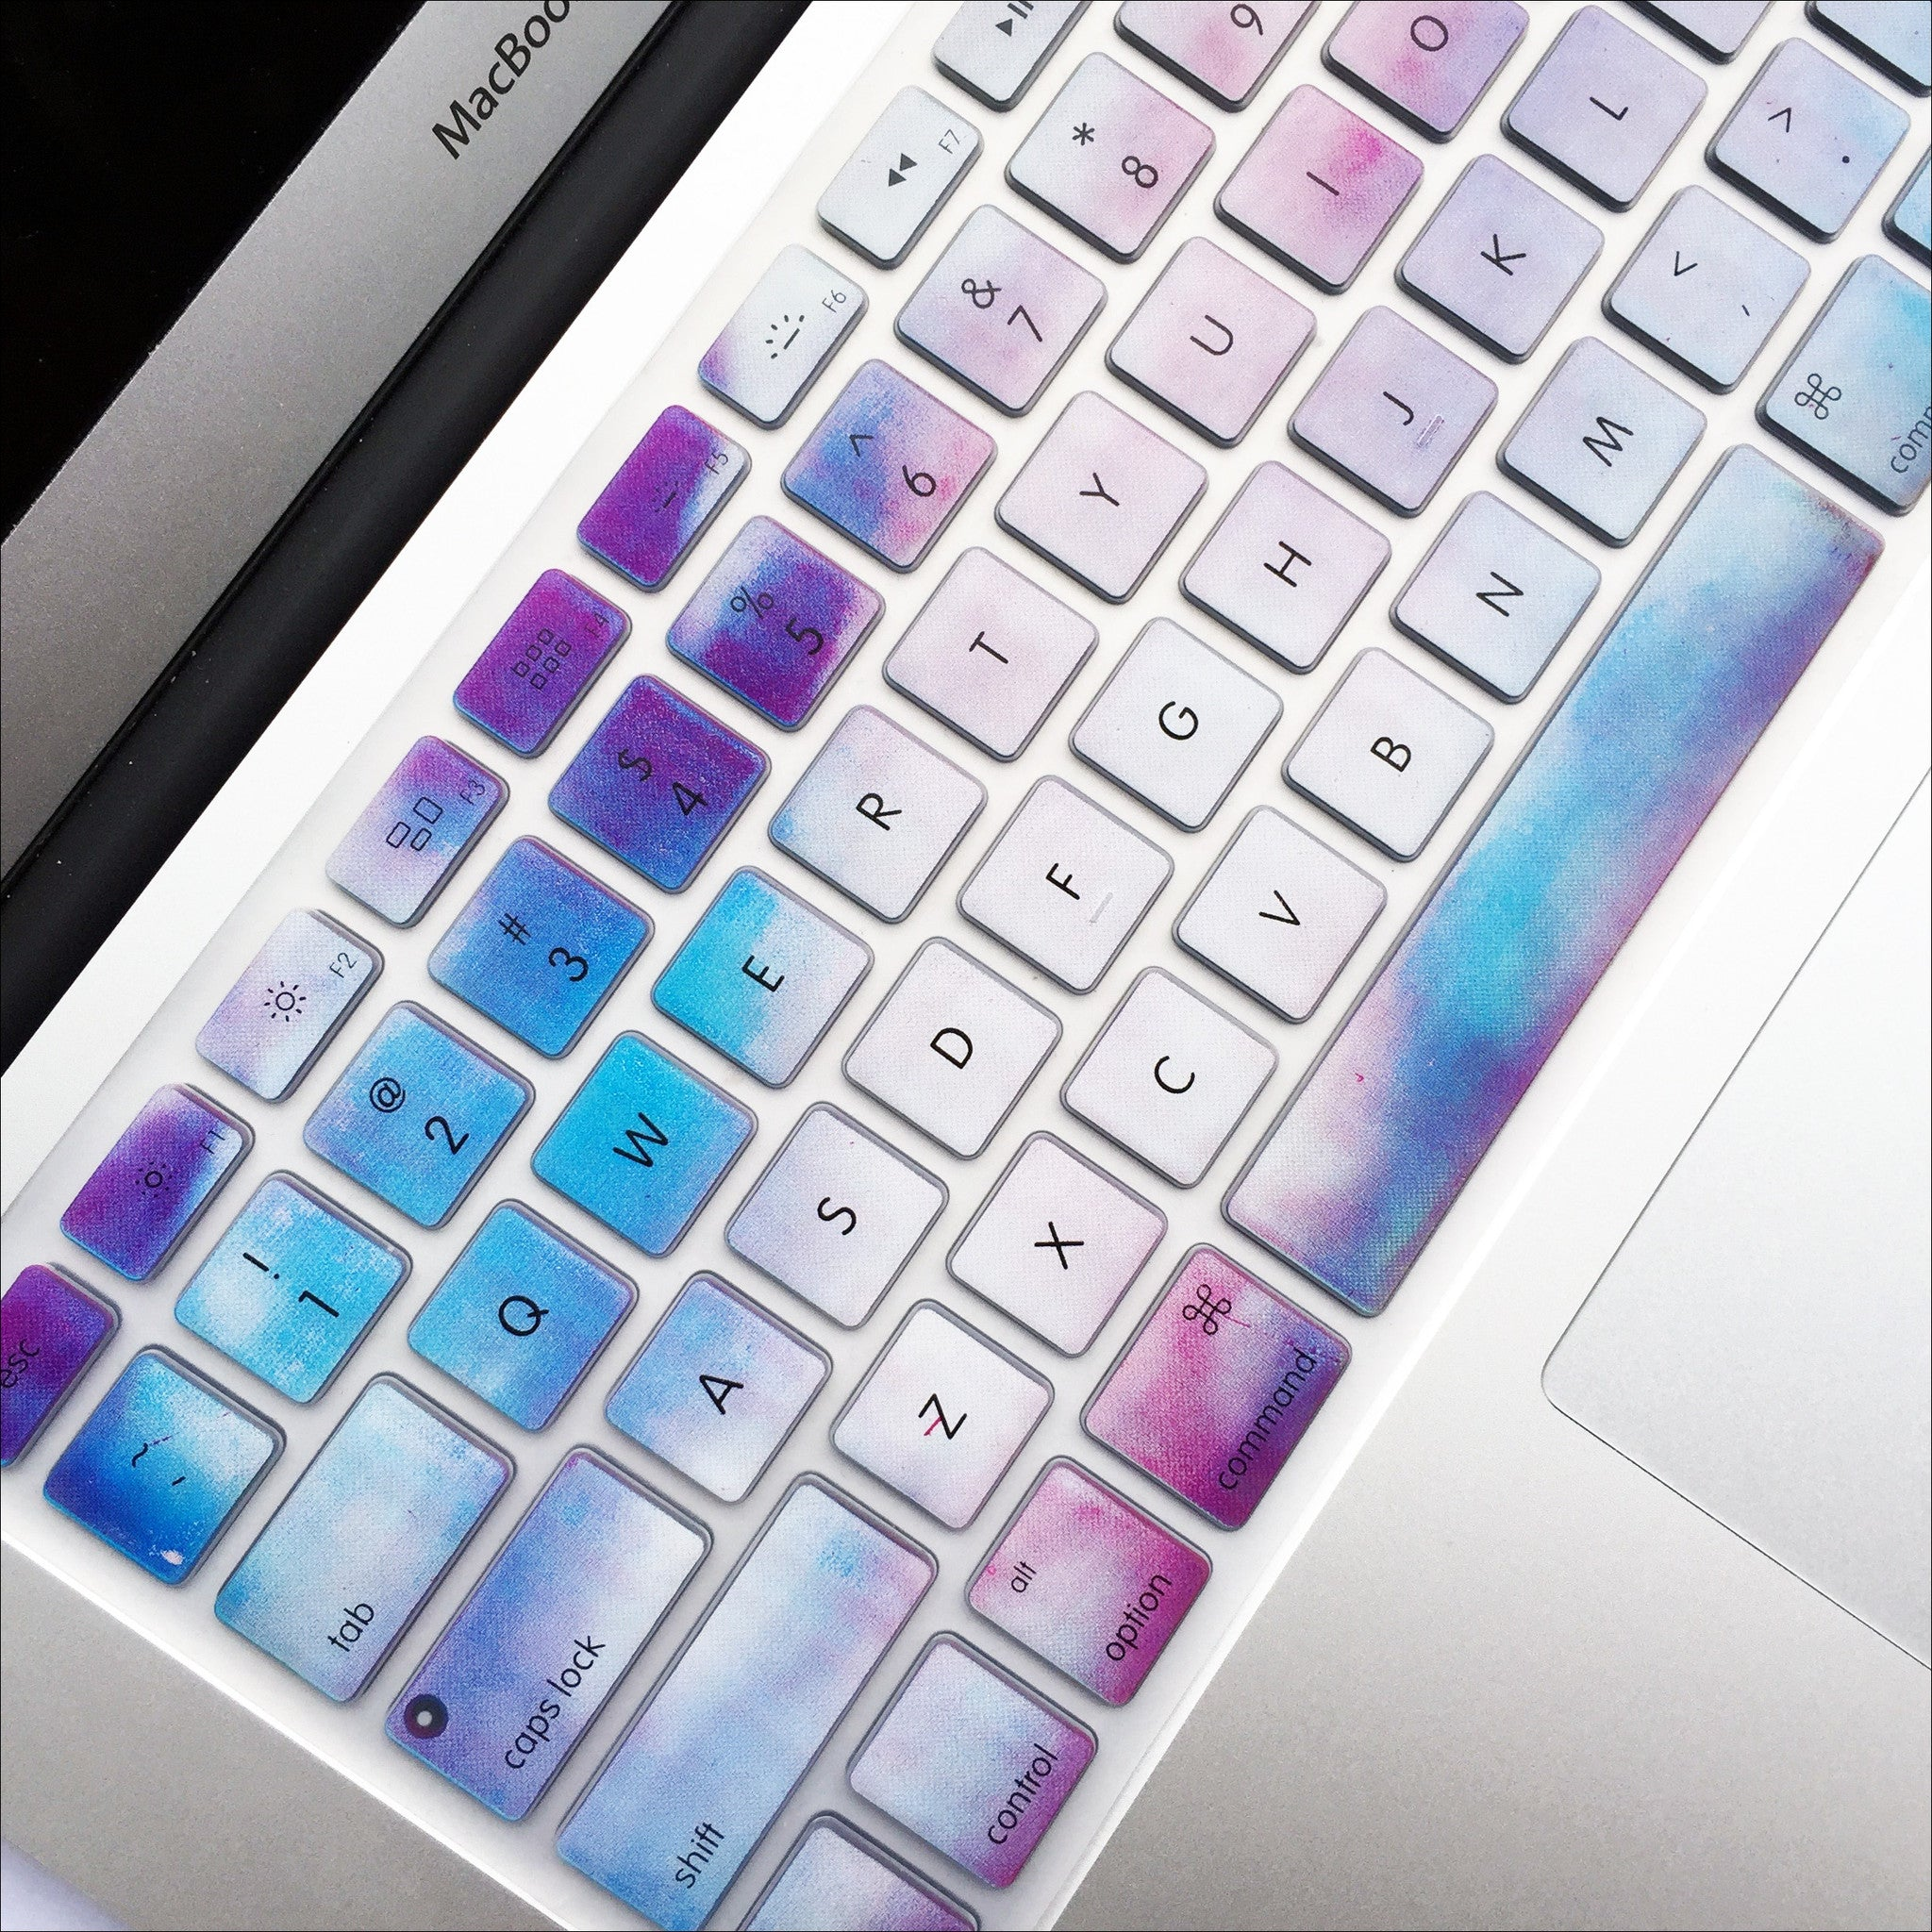 Food Book Cover Keyboard : Macbook keyboard cover sky marble mahalocases